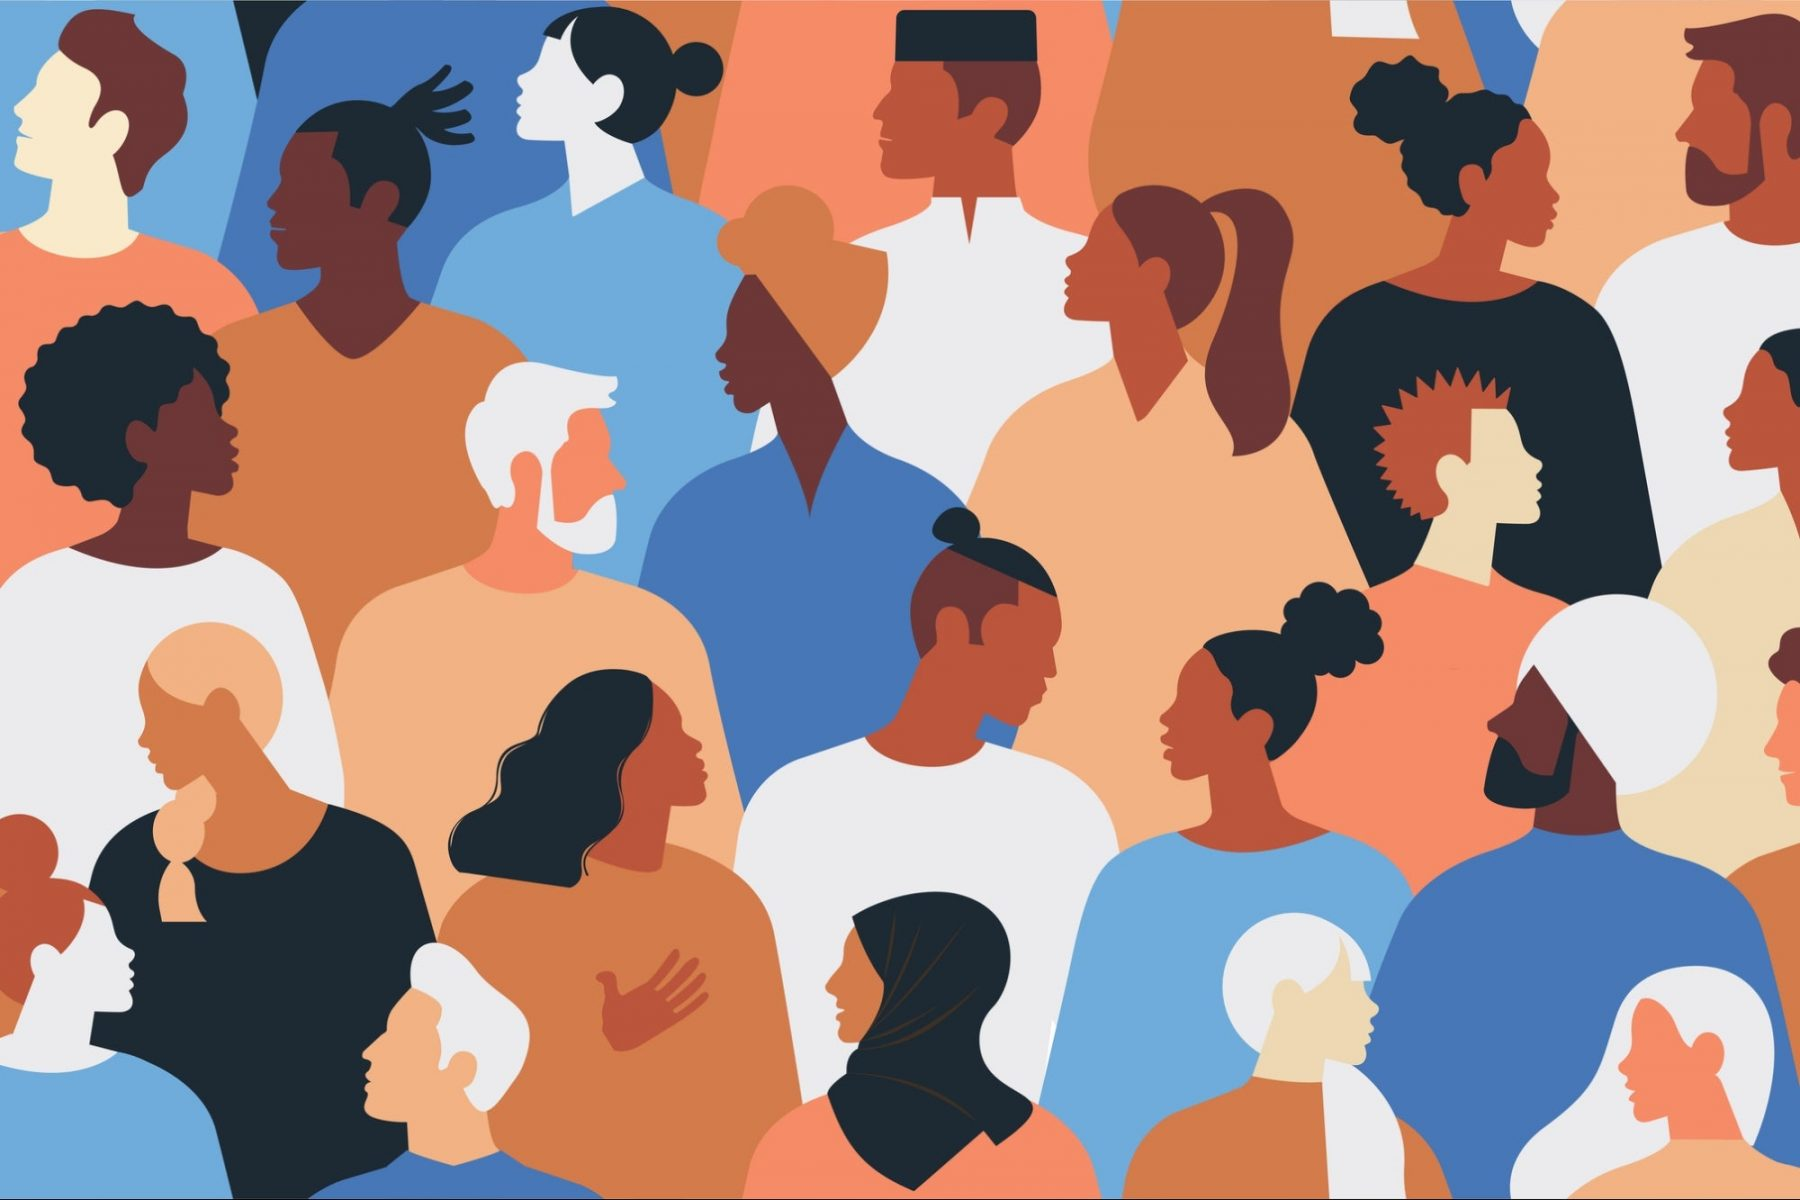 we-all-know-there-is-a-lack-of-diversity-in-the-workplace.-who-is-responsible?